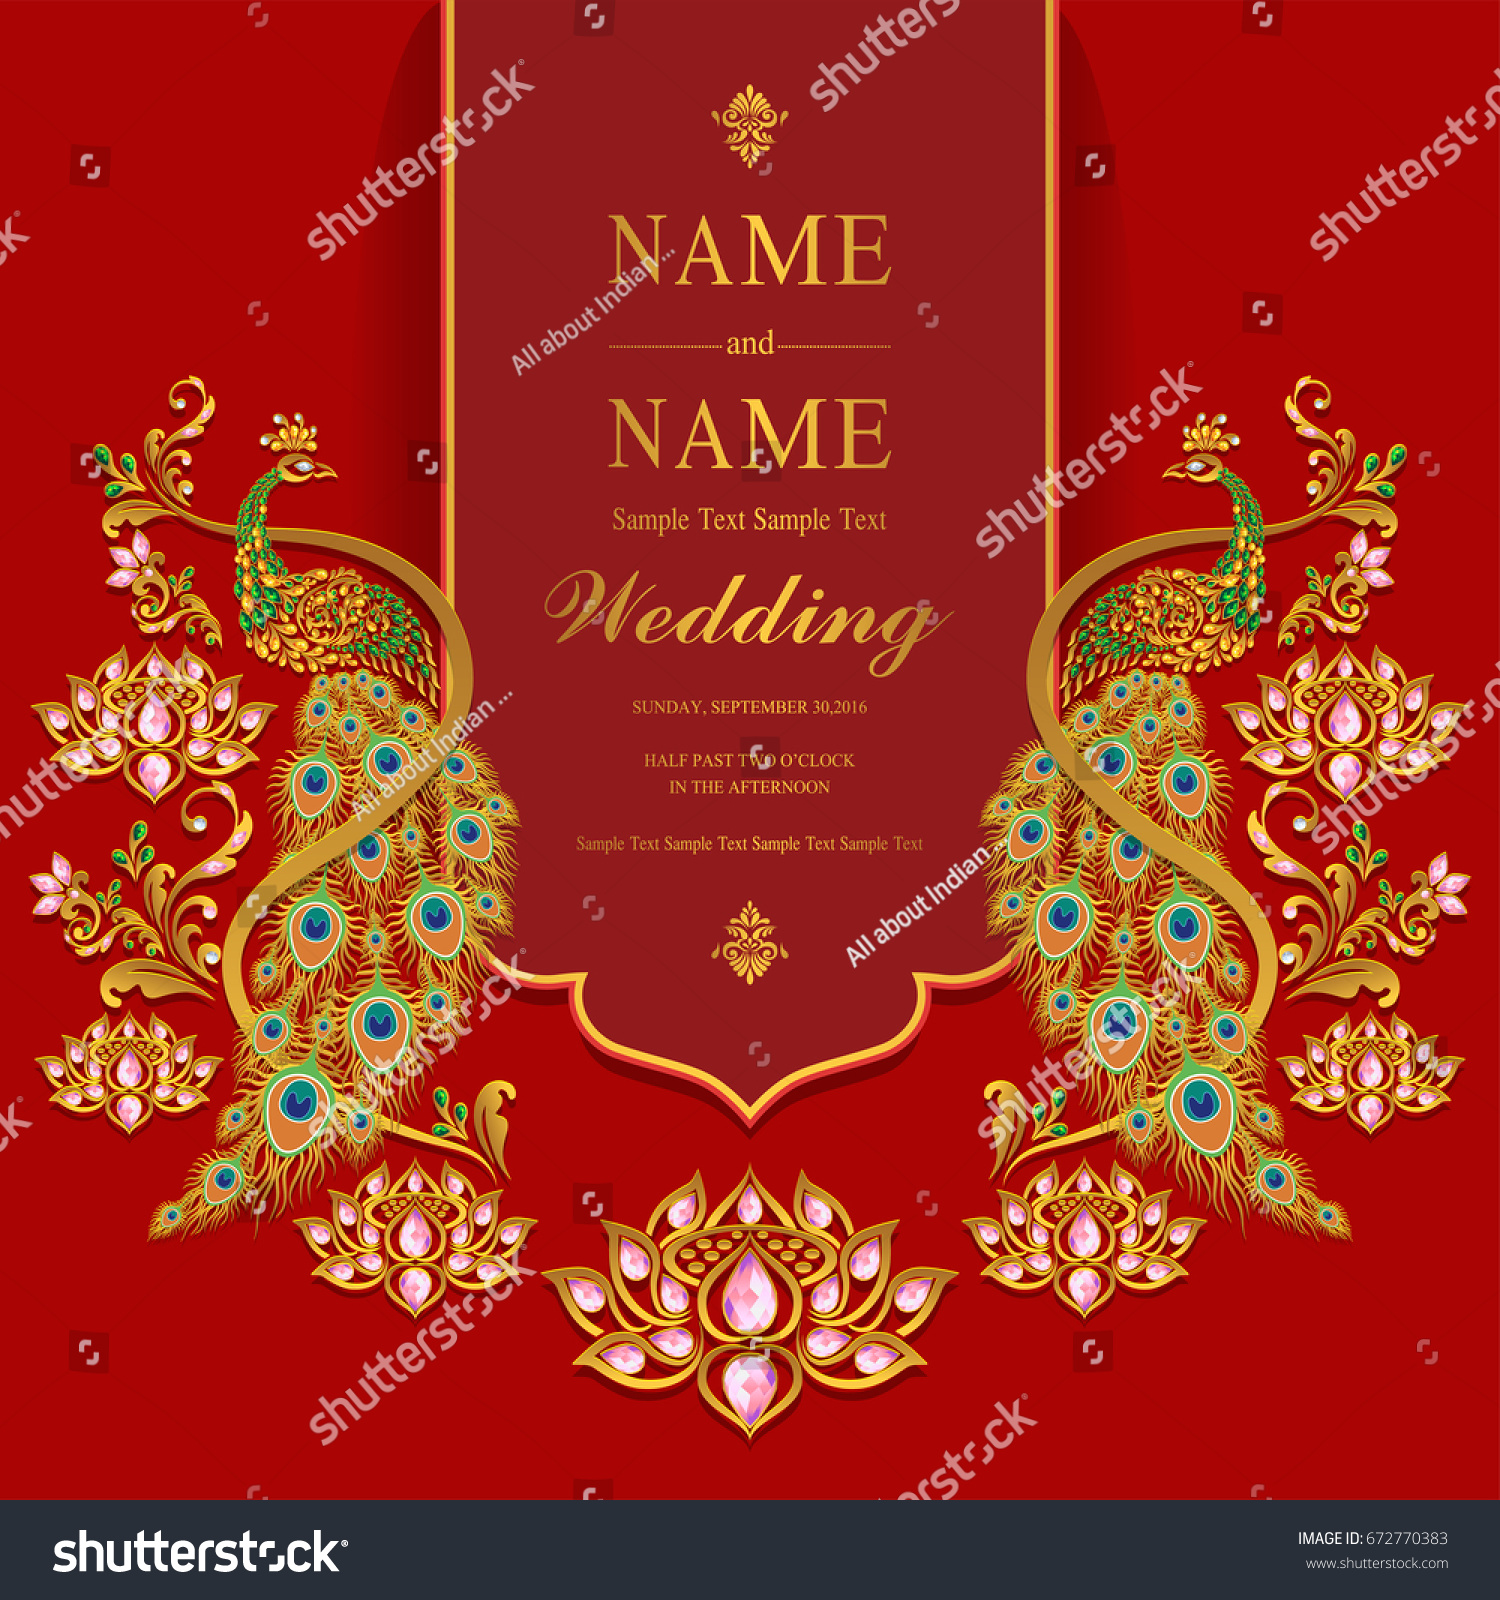 Wedding Invitation Card Templates Gold Peacock Image Vectorielle De